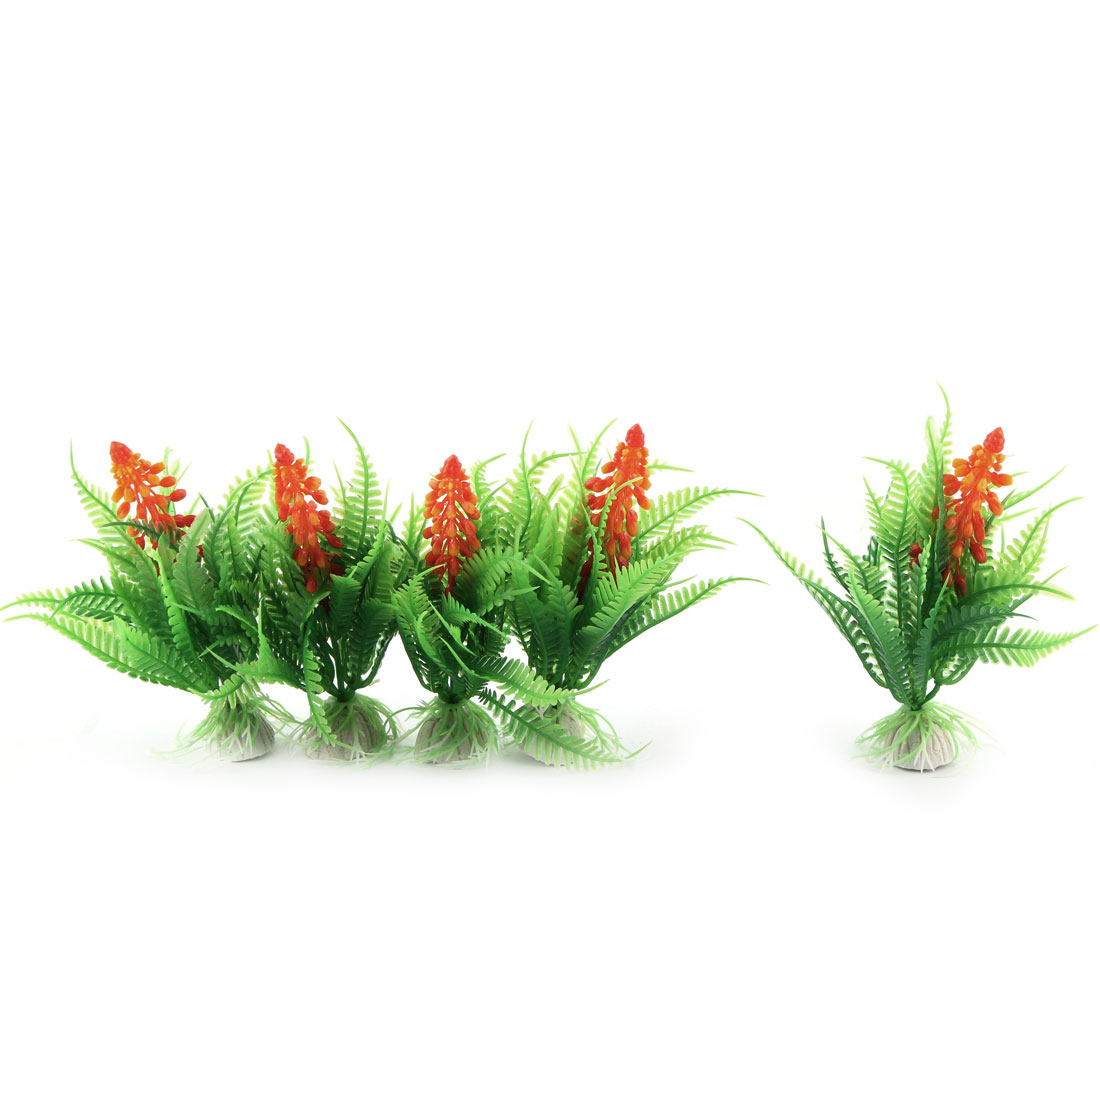 Aquarium Fish Tank Ornament Plastic Artificial Water Plants Green Orange 5 Pcs